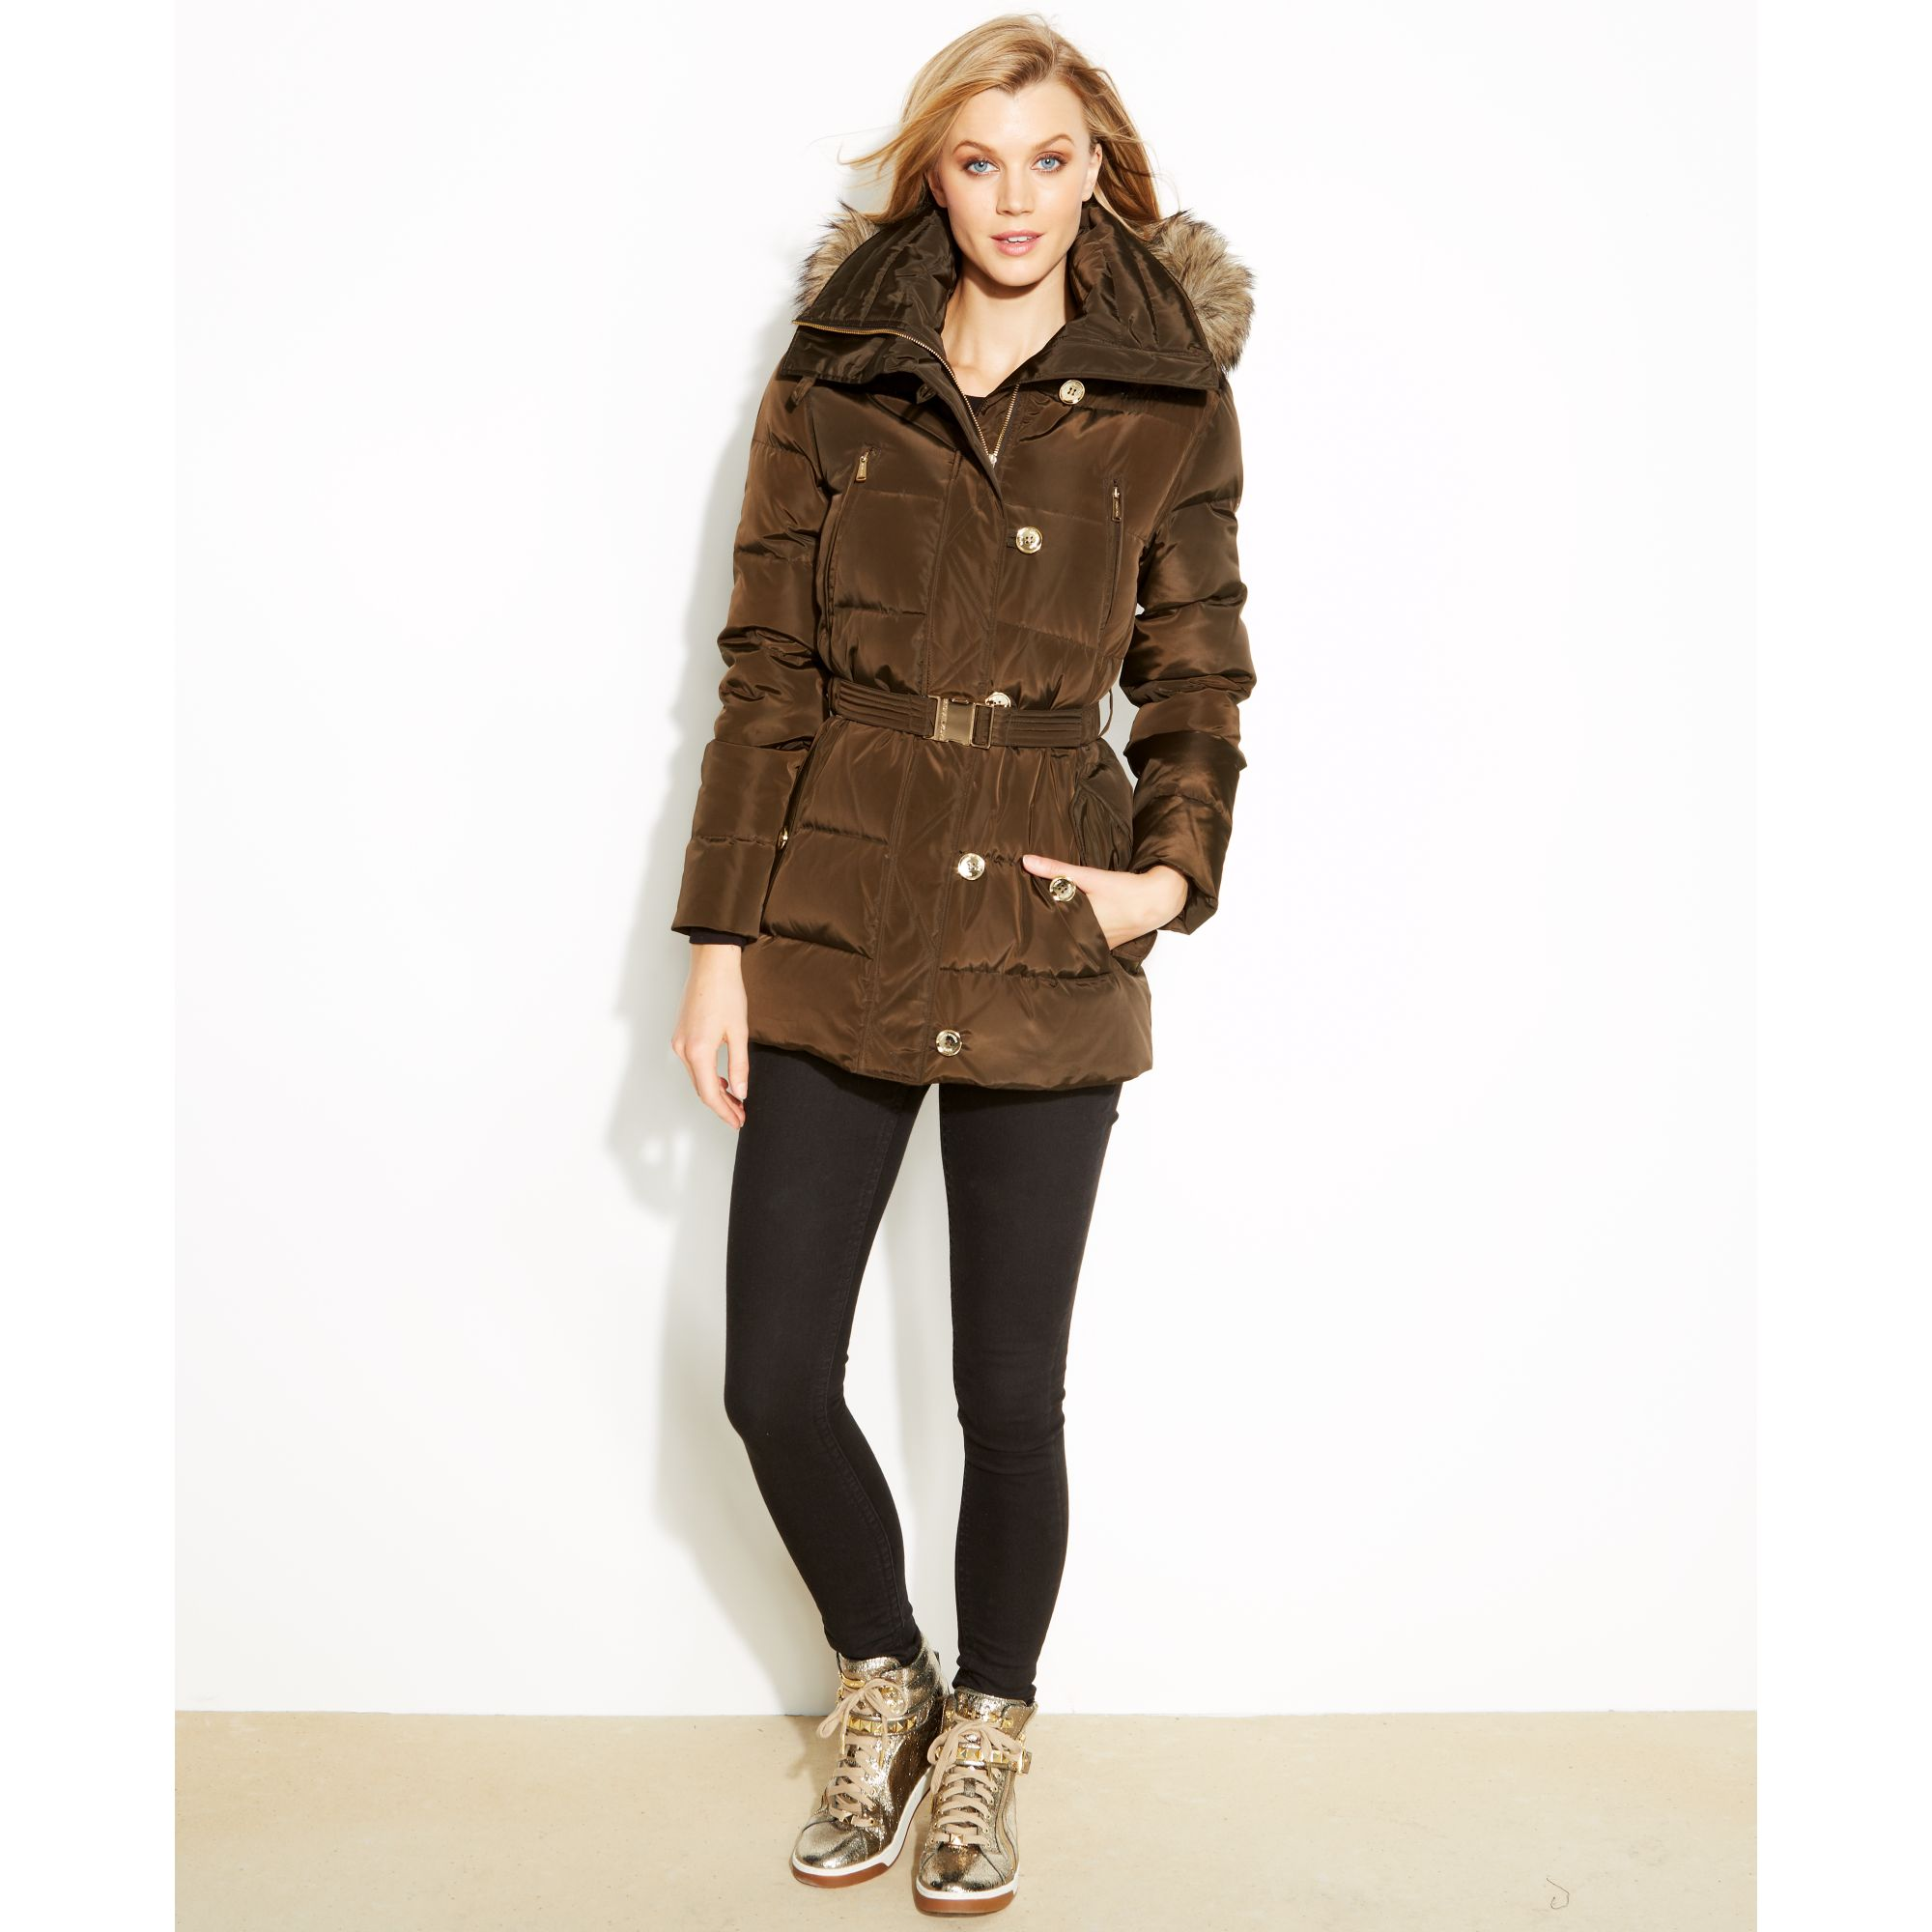 117466b05f25 Lyst - Michael Kors Hooded Fauxfurtrim Quilted Belted Puffer in Brown